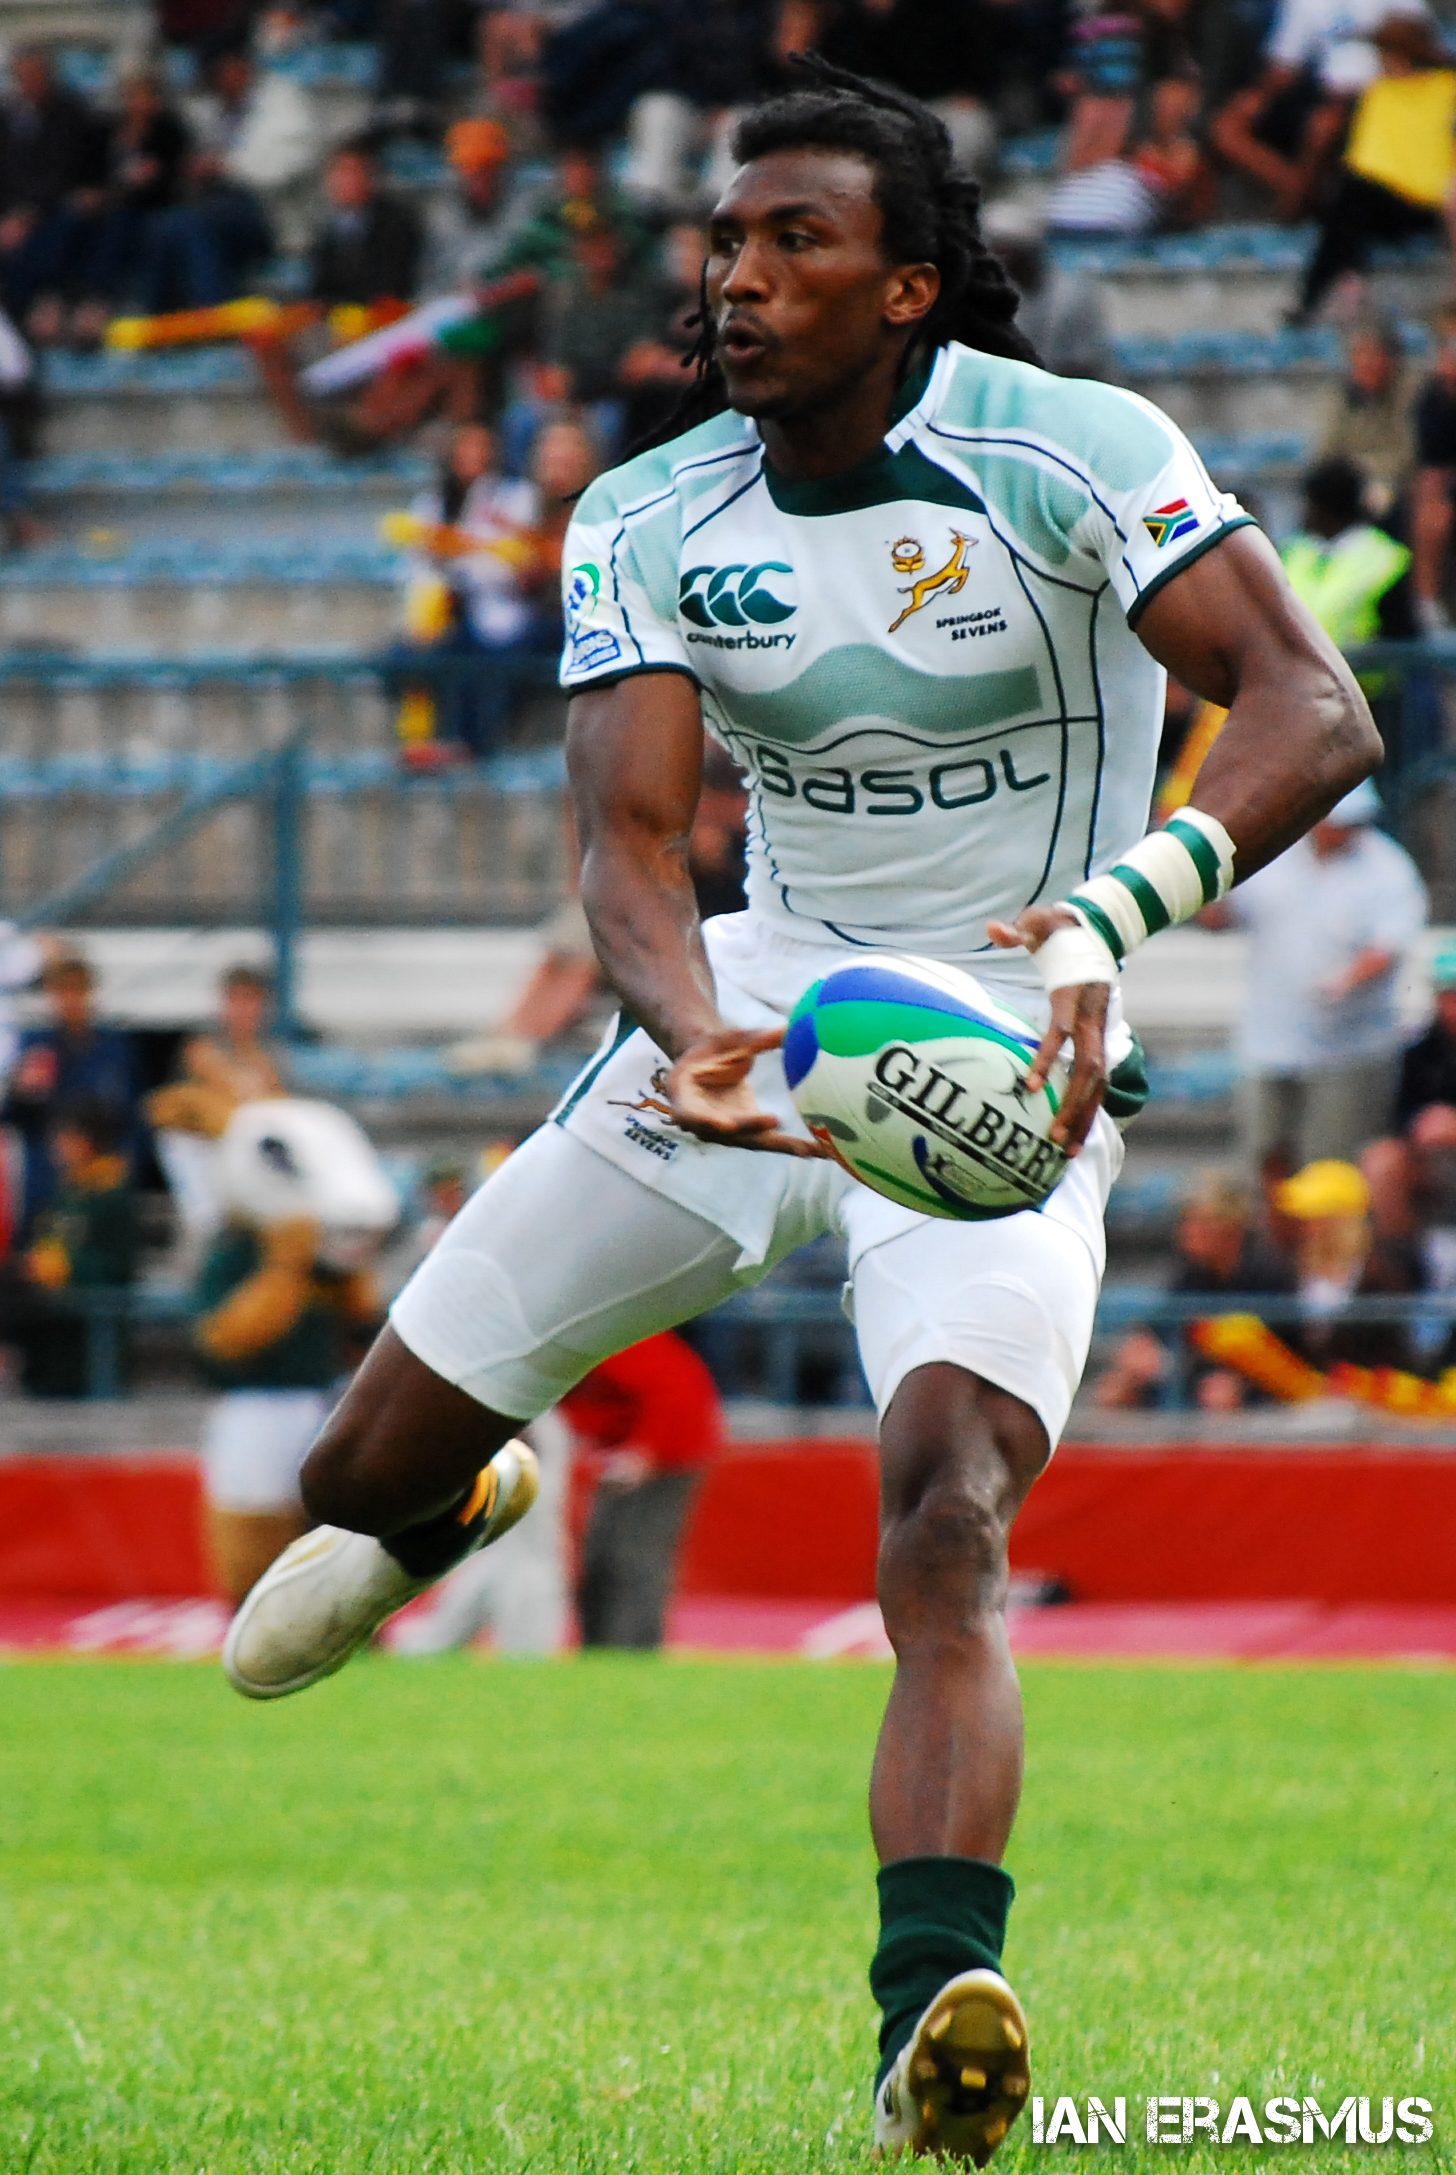 Danwel Demas - South Africa